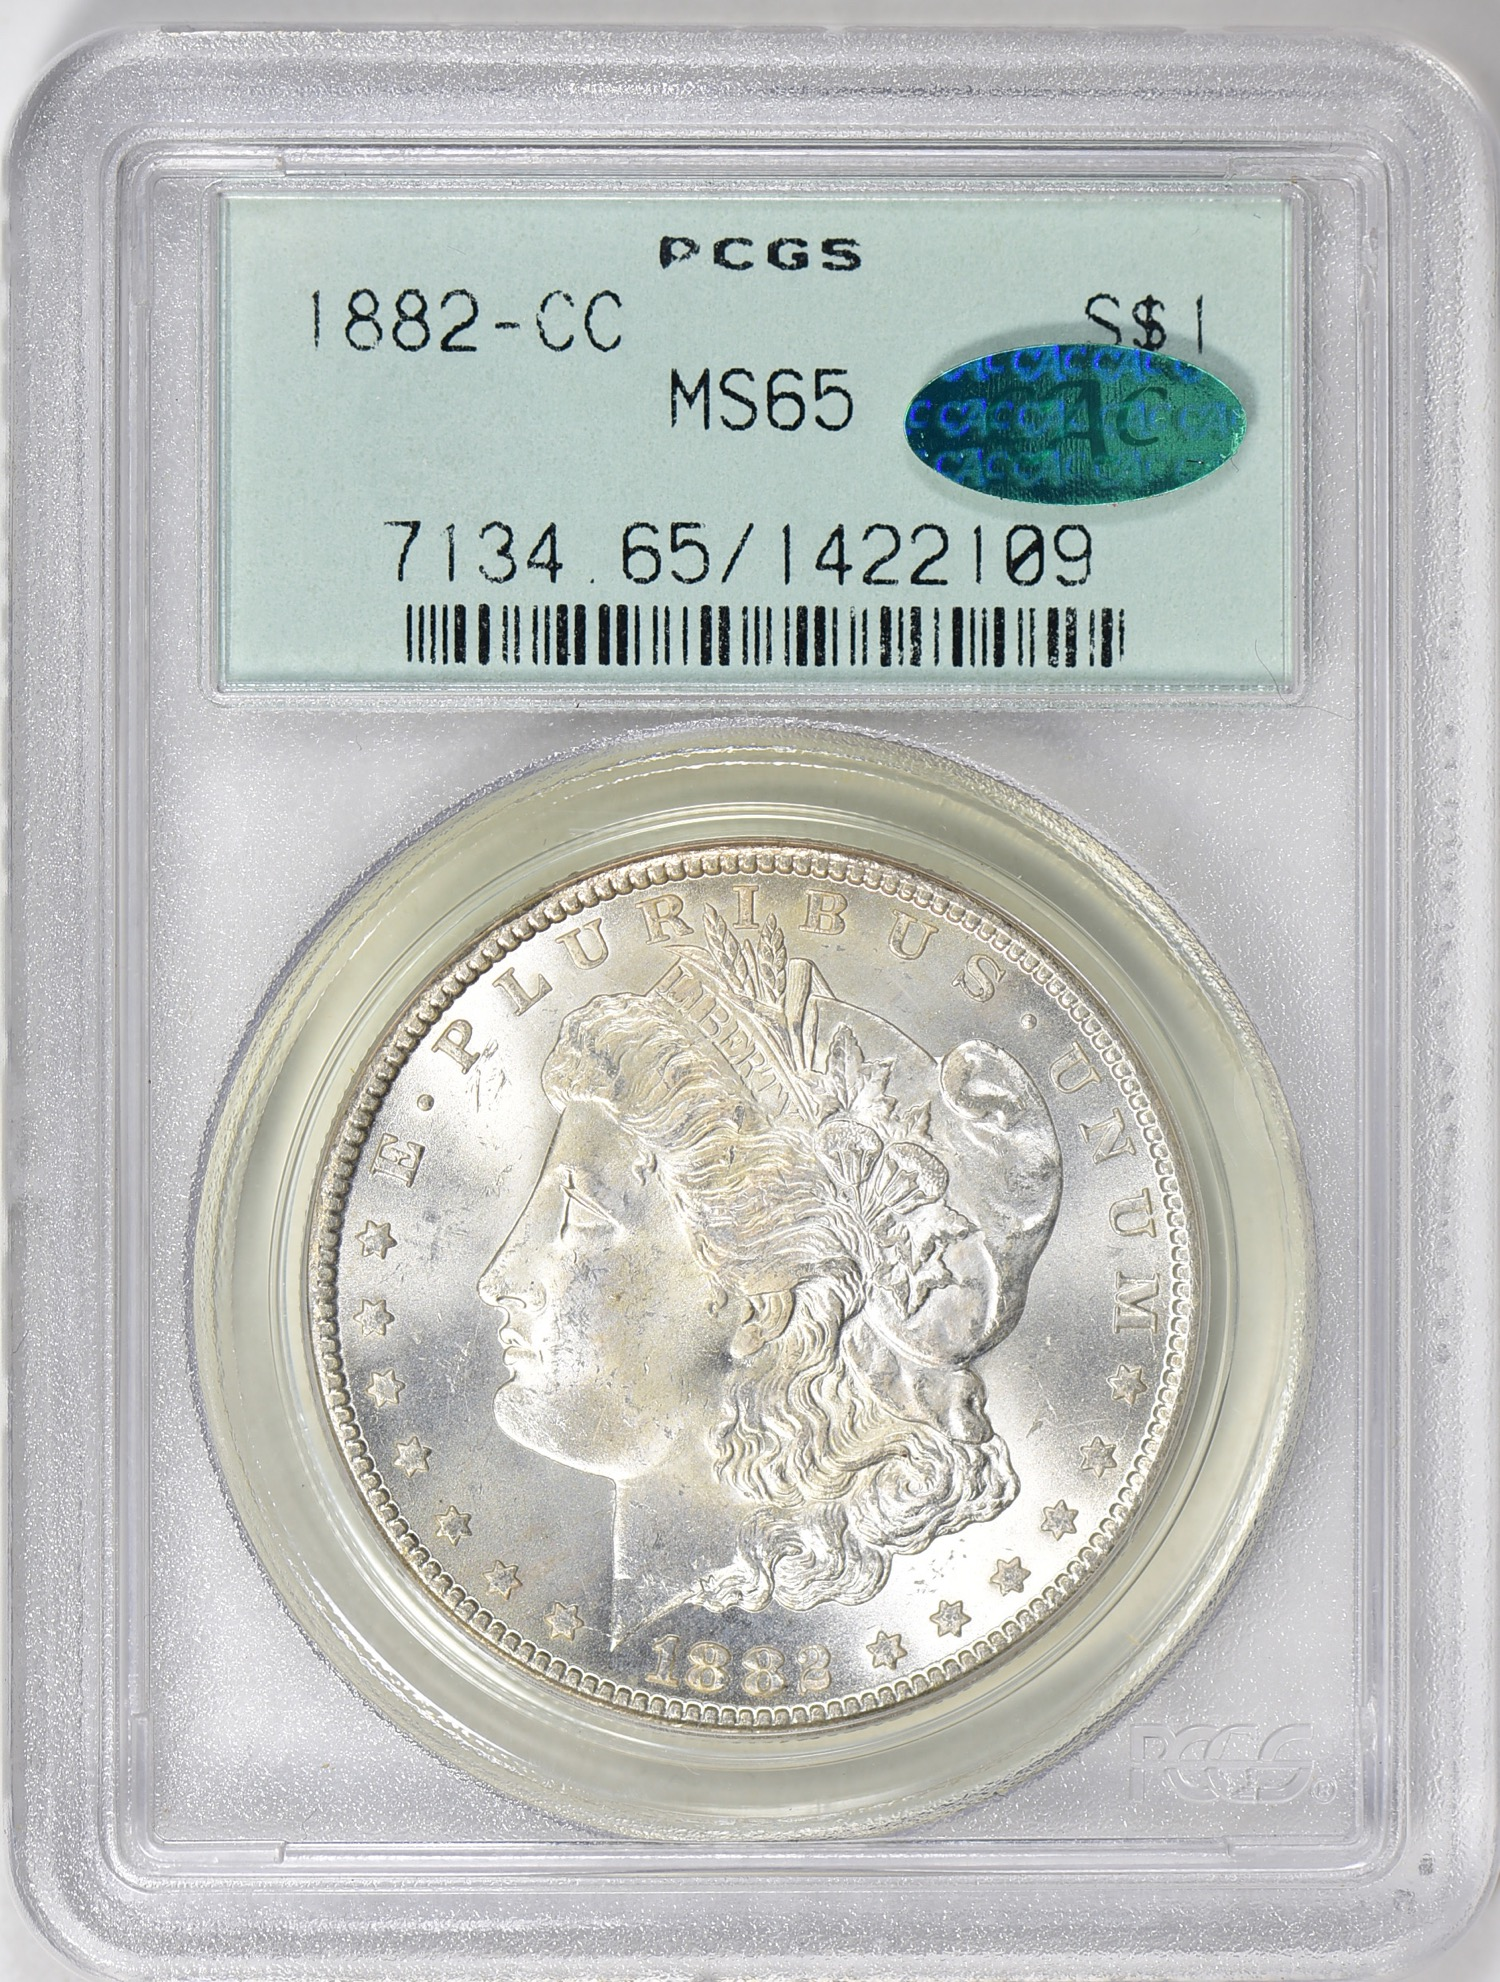 1882-CC MS65 CAC OGH - Acquired 6.30.19 GreatCollections. One more for the Gem CAC OGH Morgan set I am slowly building. It seems more Morgan's are in OGH holders than any other series.